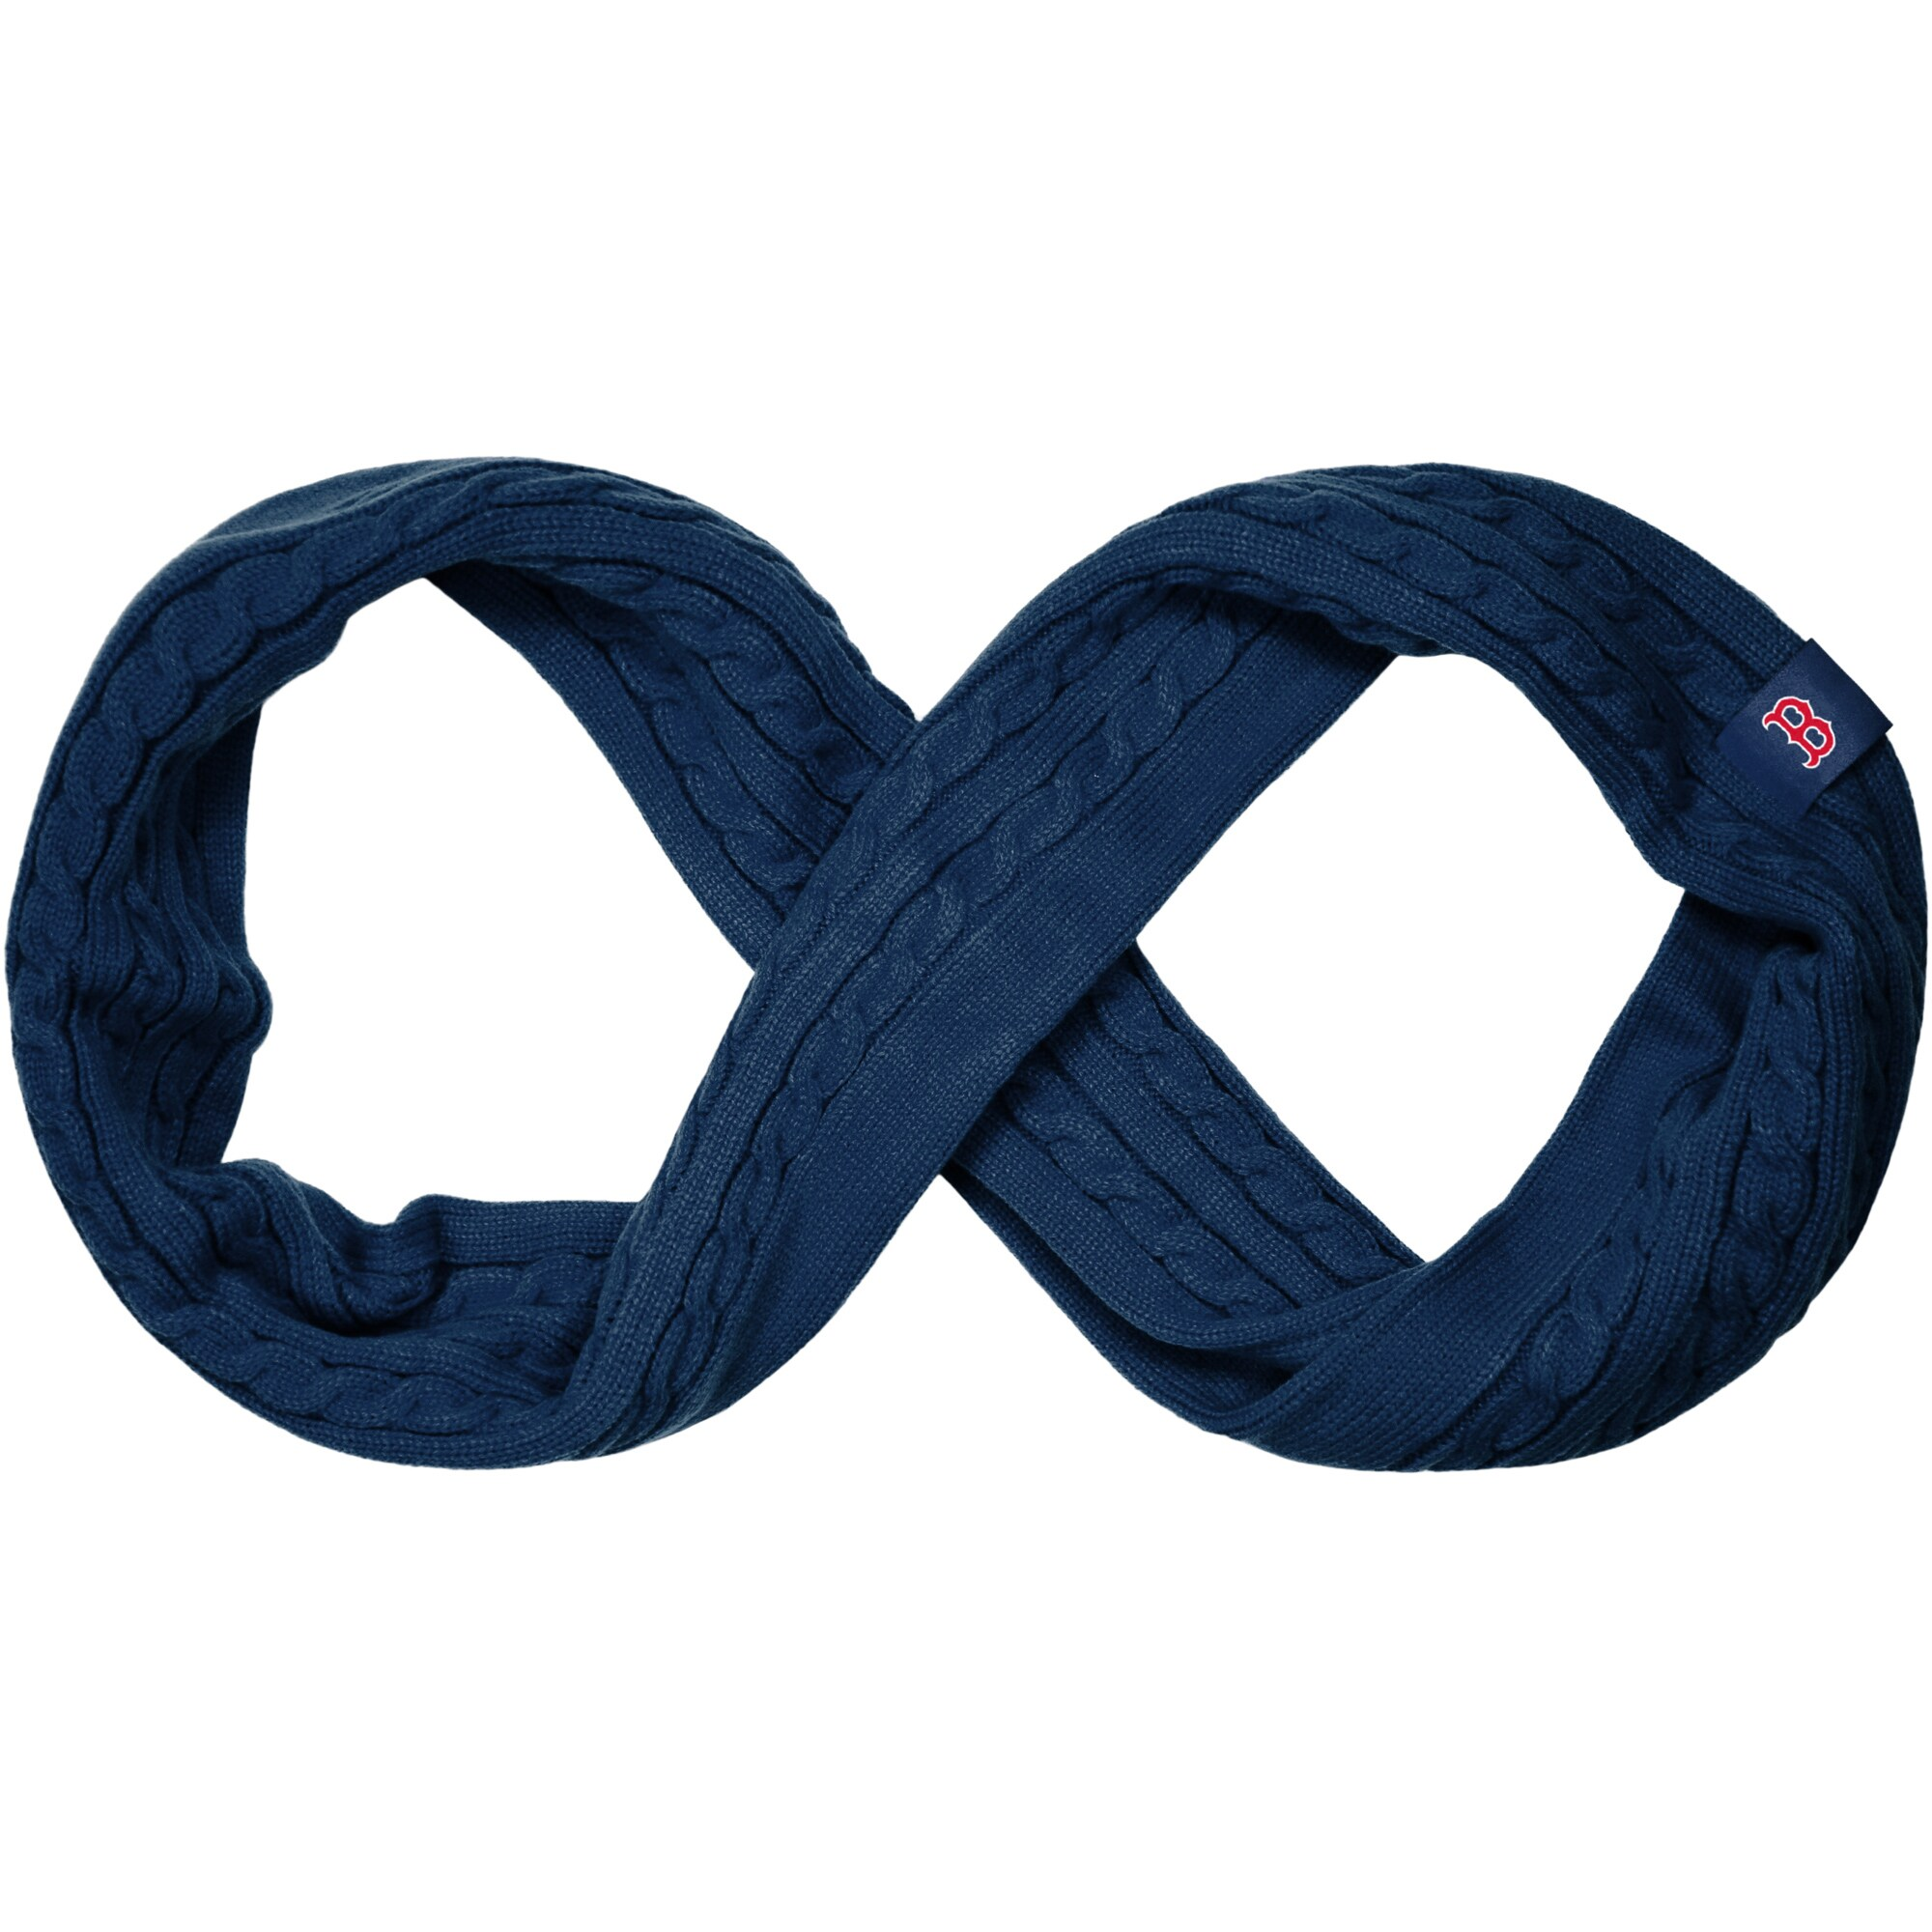 Boston Red Sox Women's Cable Knit Infinity Scarf - Navy